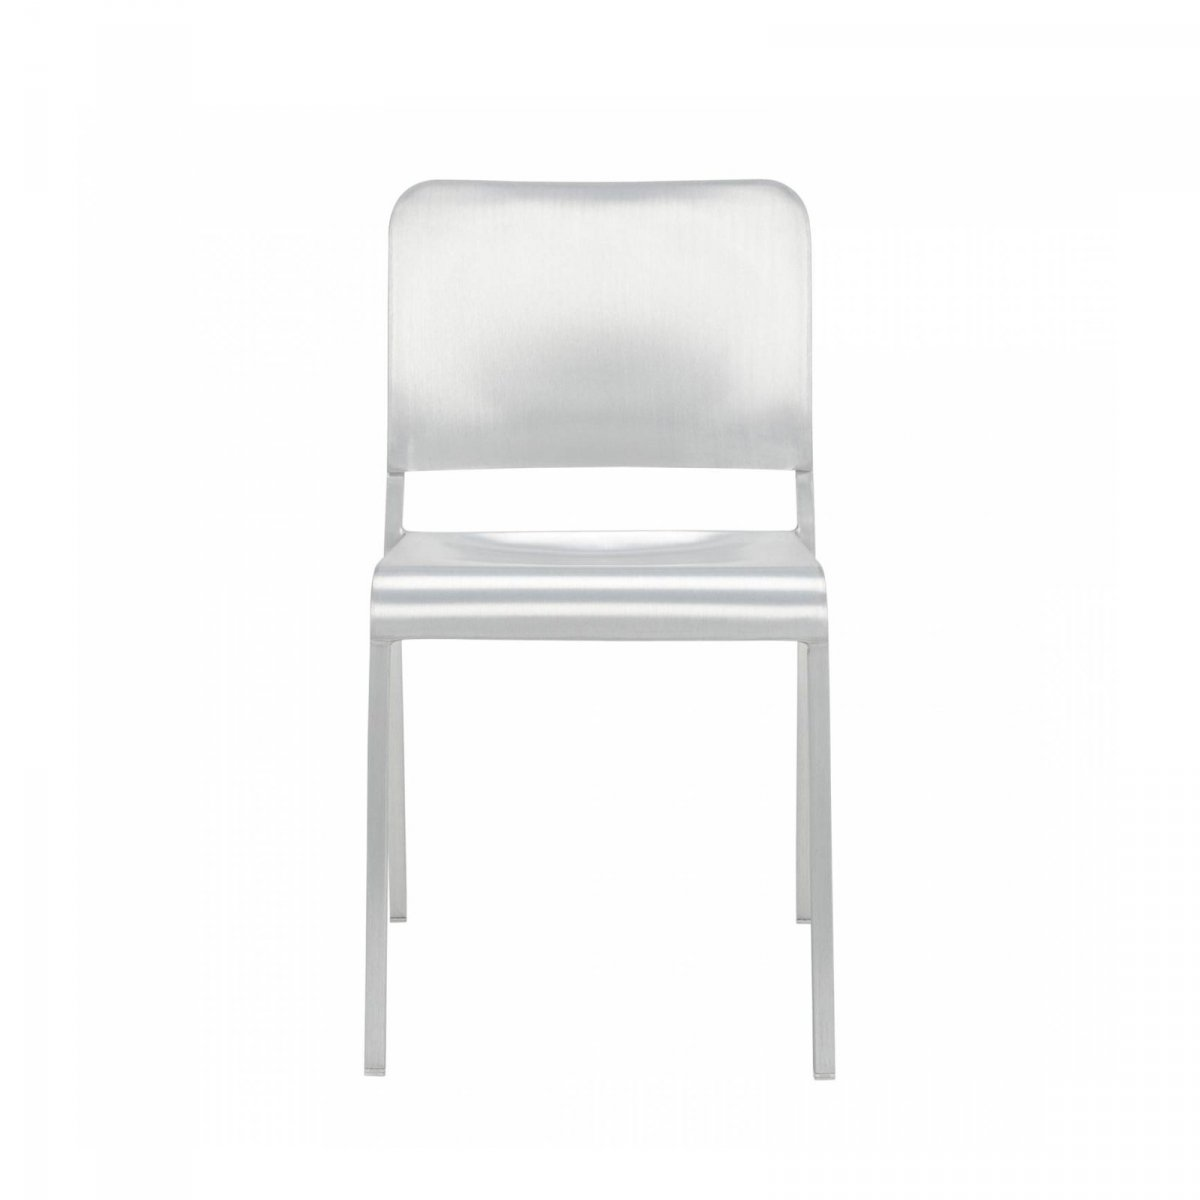 20-06 Stacking Chair, front view.